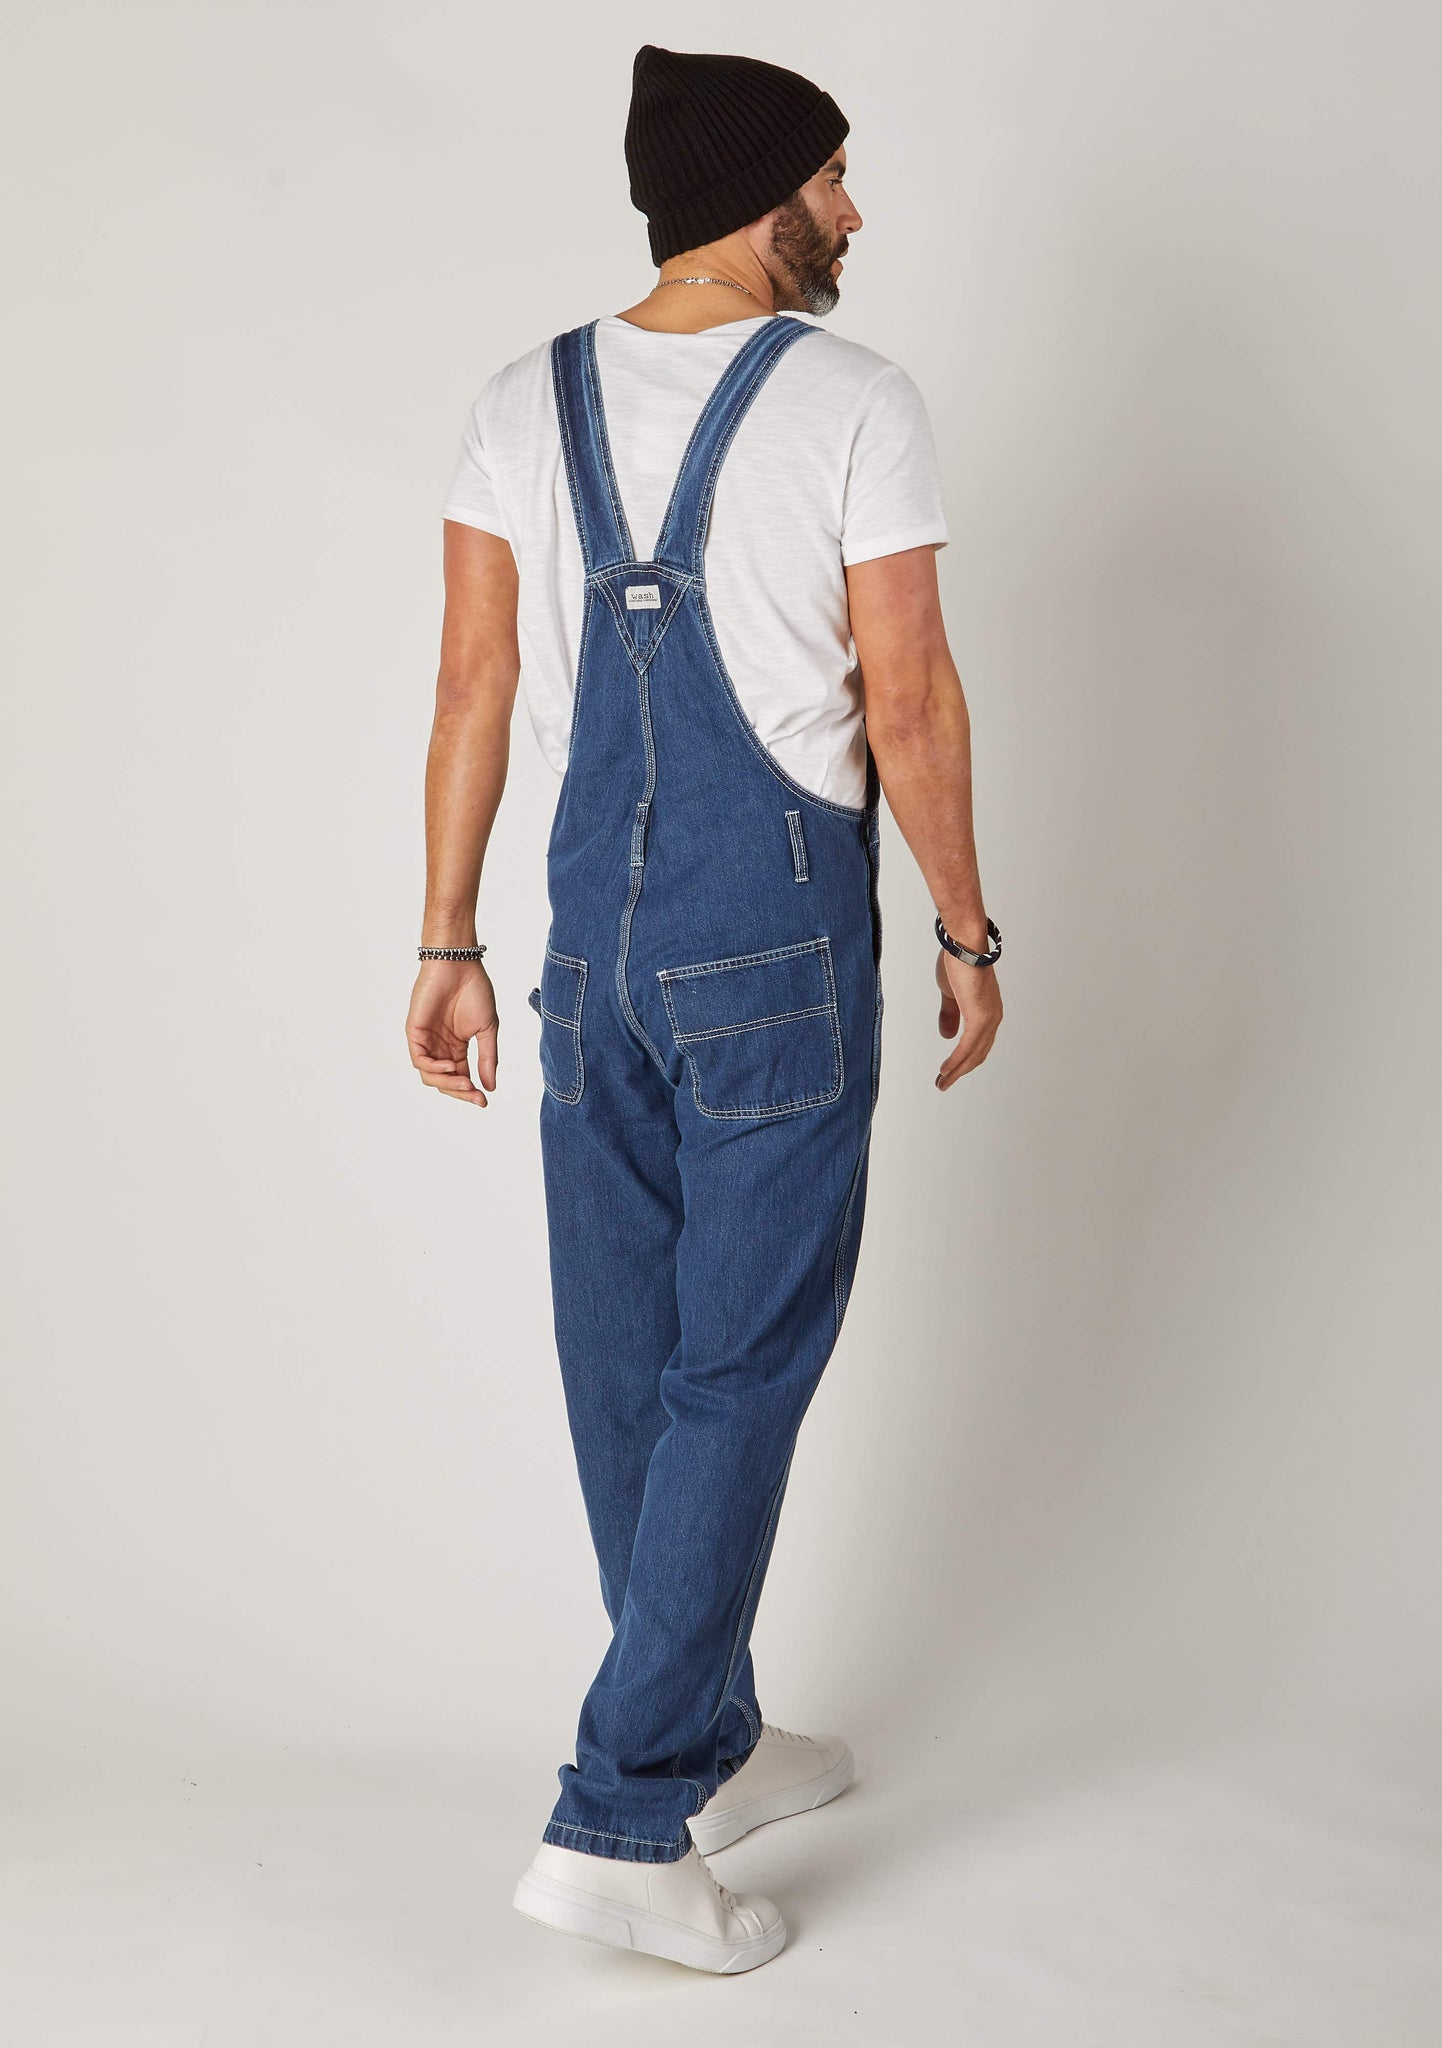 Rear view full-length pose men's stonewash bib-overalls showing back of straps